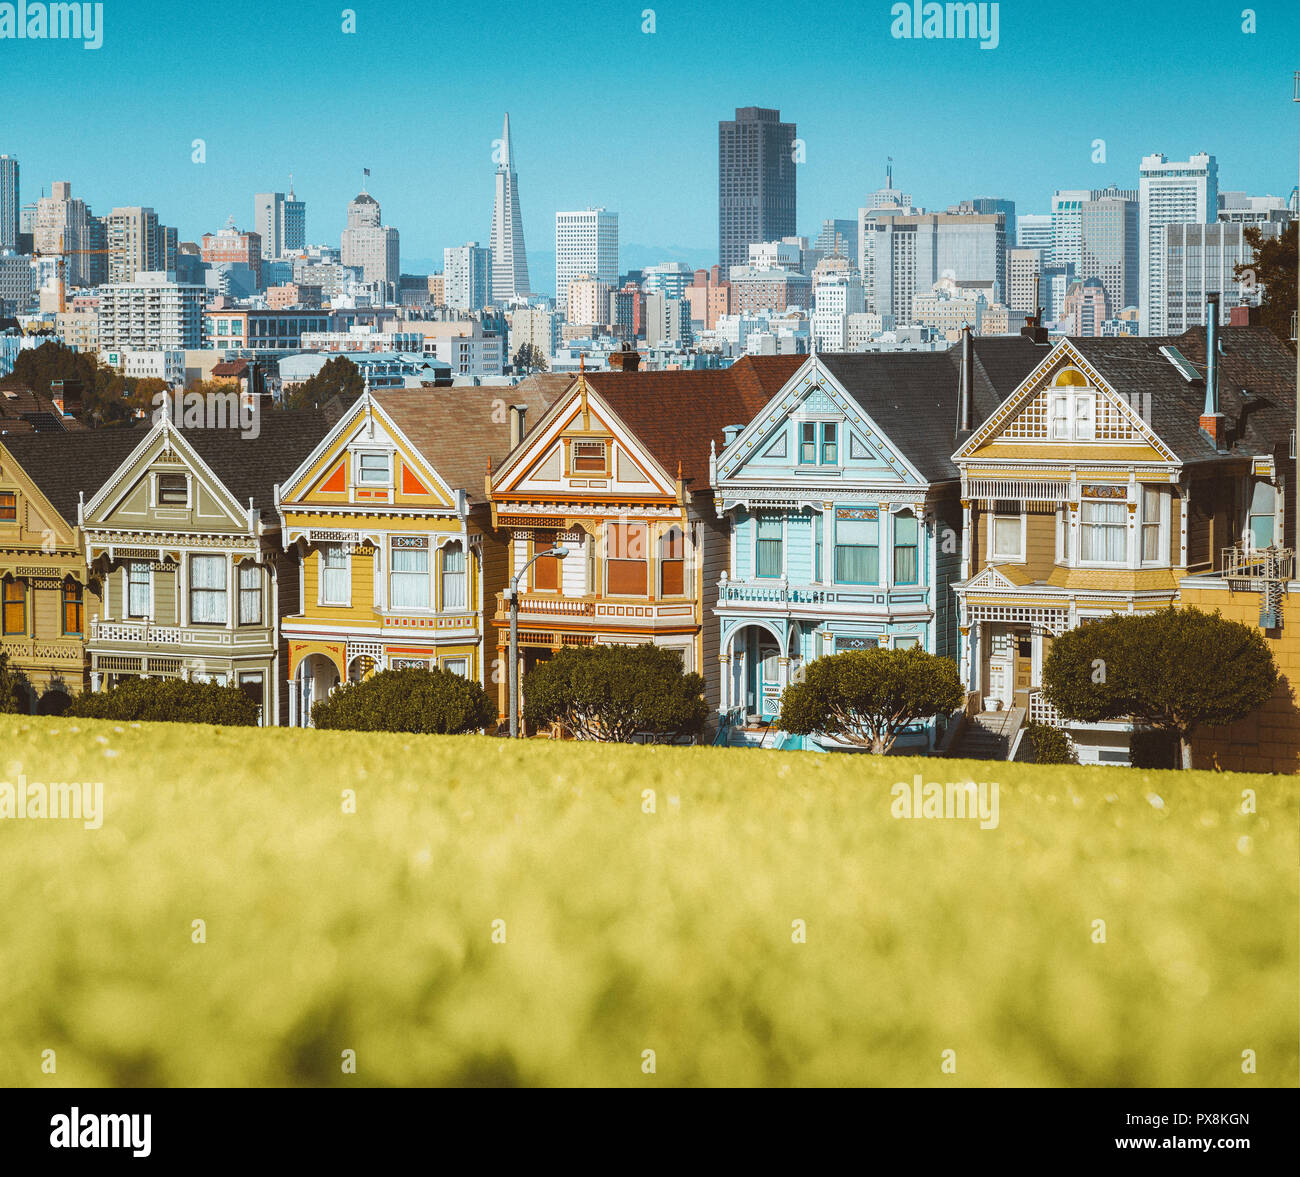 Classic postcard view of famous Painted Ladies, a row of colorful Victorian houses located at Alamo Square, with the skyline of San Francisco in the b - Stock Image